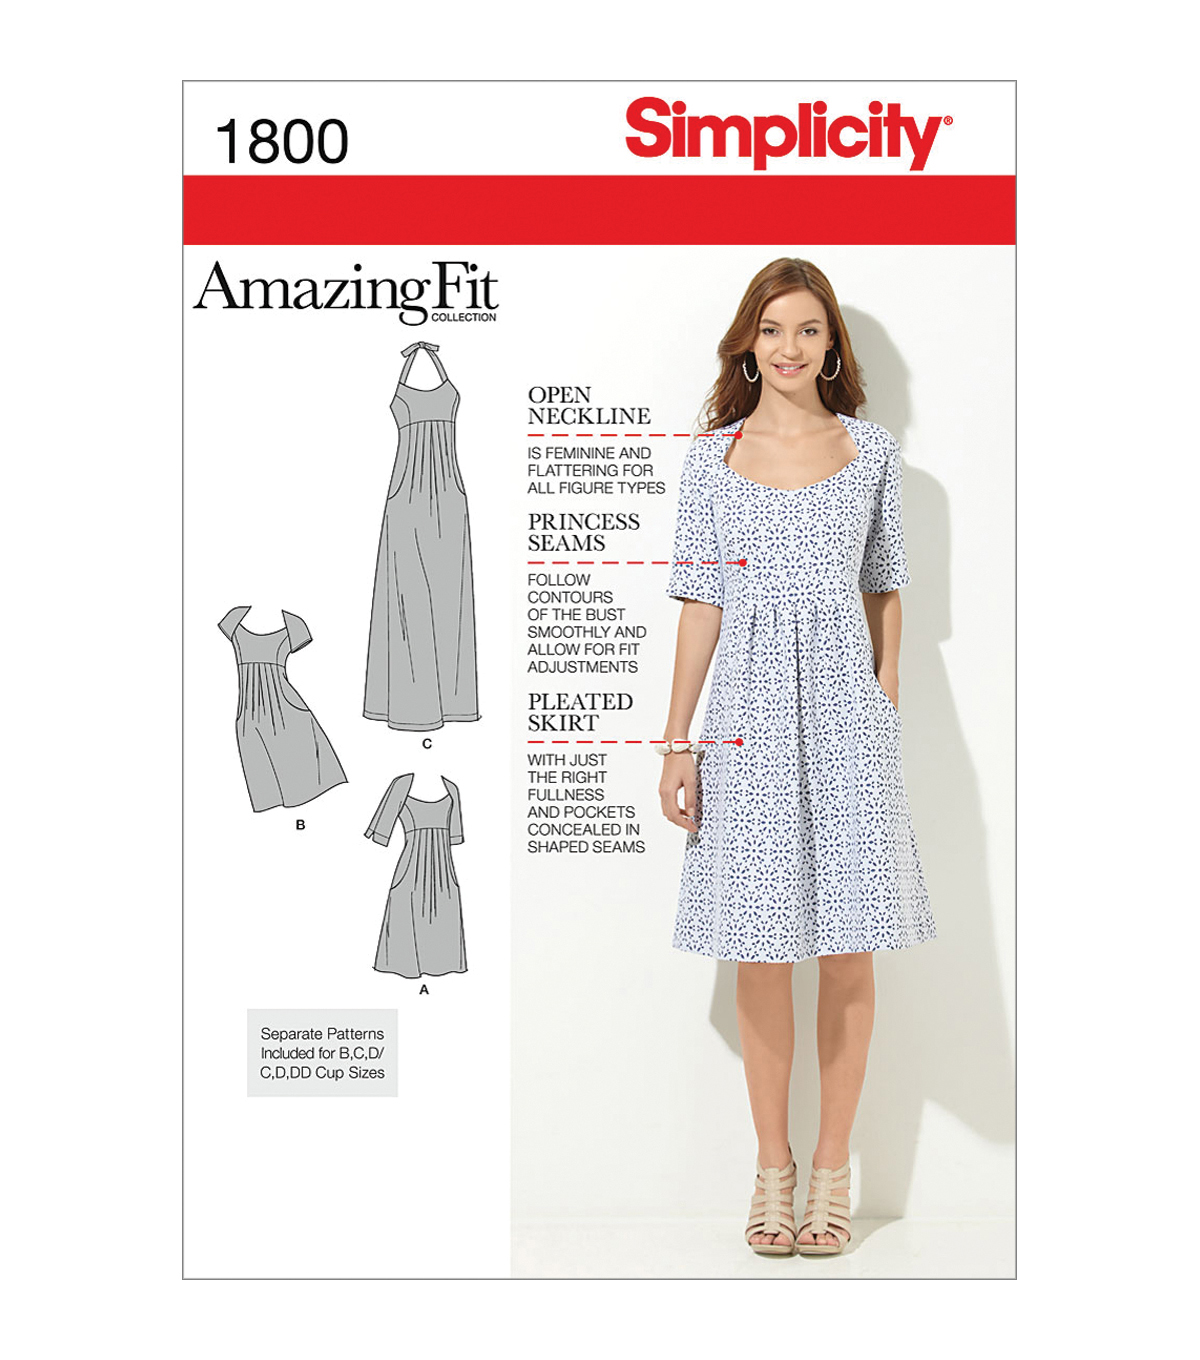 Simplicity Patterns Us1800Bb-Simplicity Misses Dresses-20W-28W